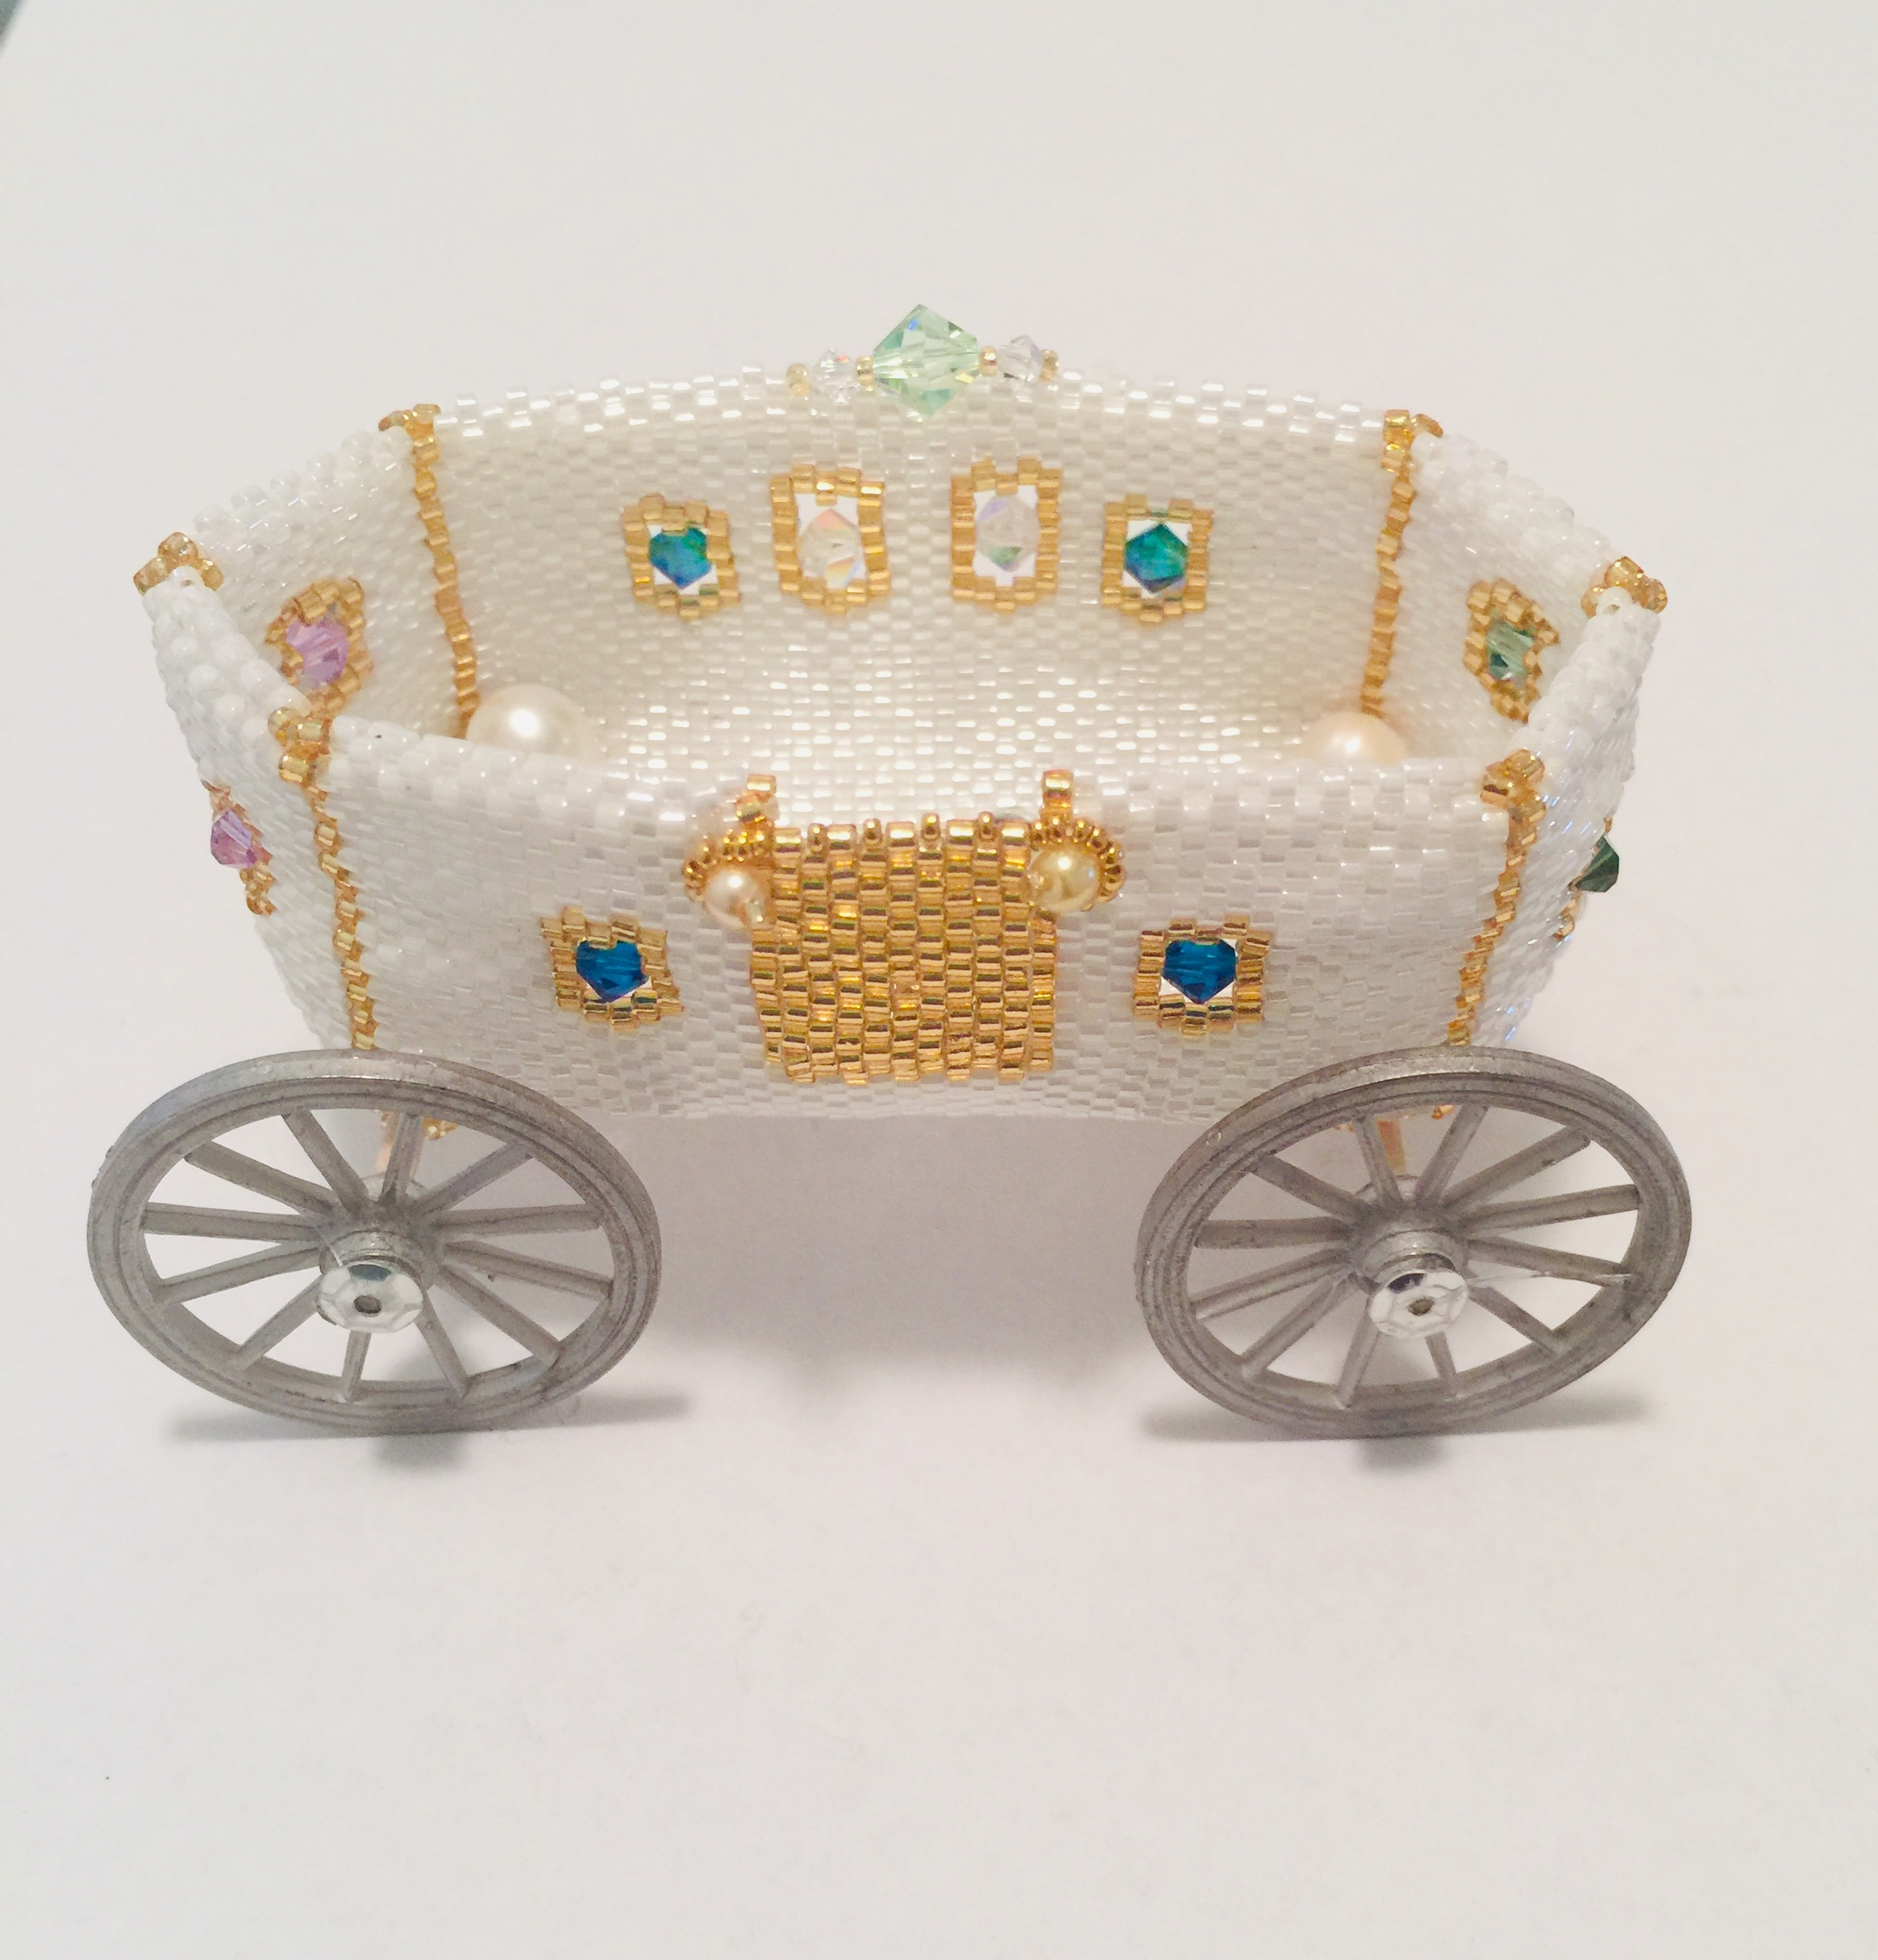 Cinderella's_carriage